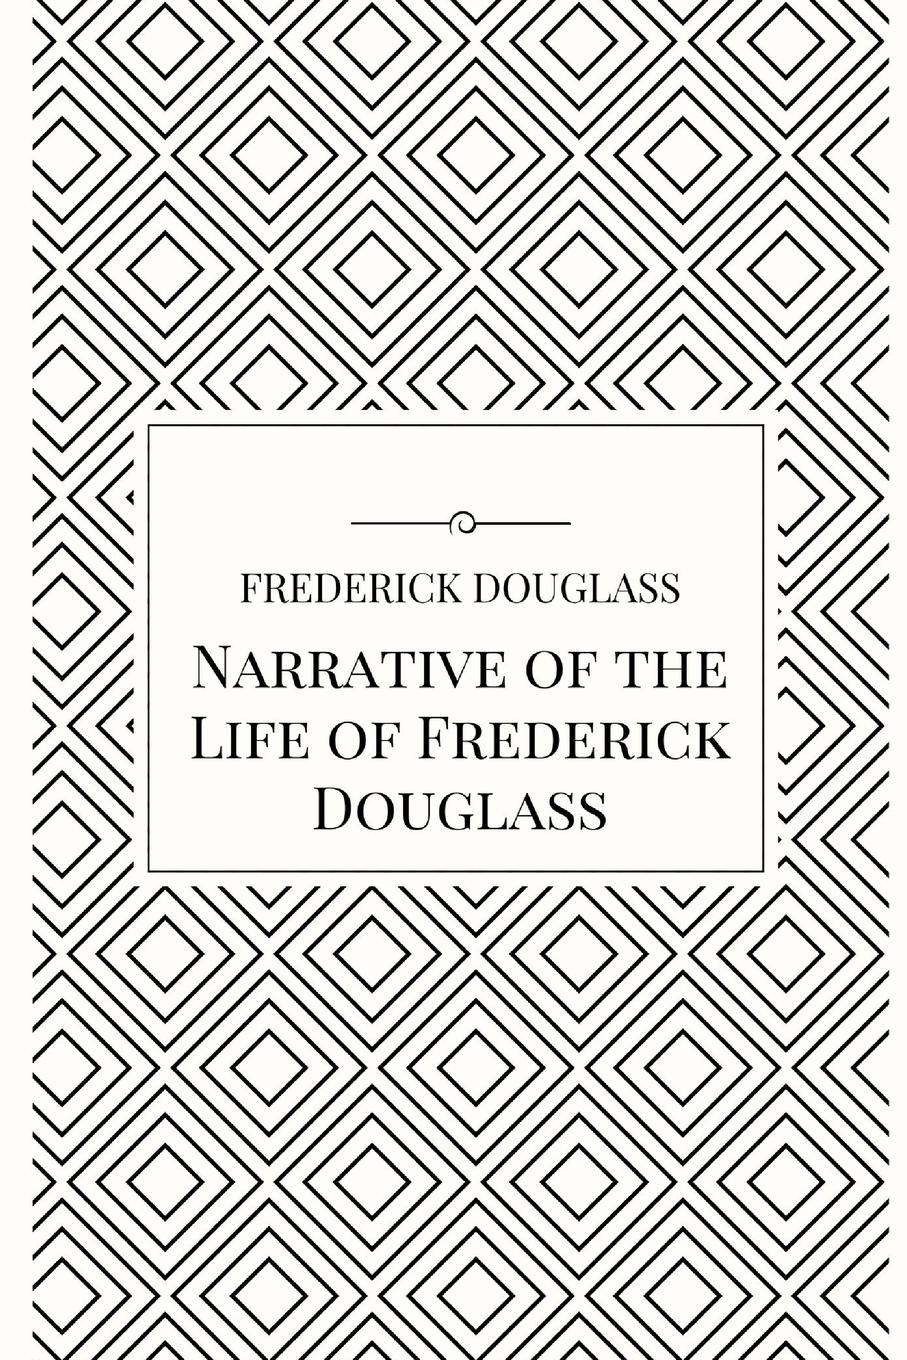 Frederick Douglass Narrative of the Life of Frederick Douglass life and times of frederick douglass